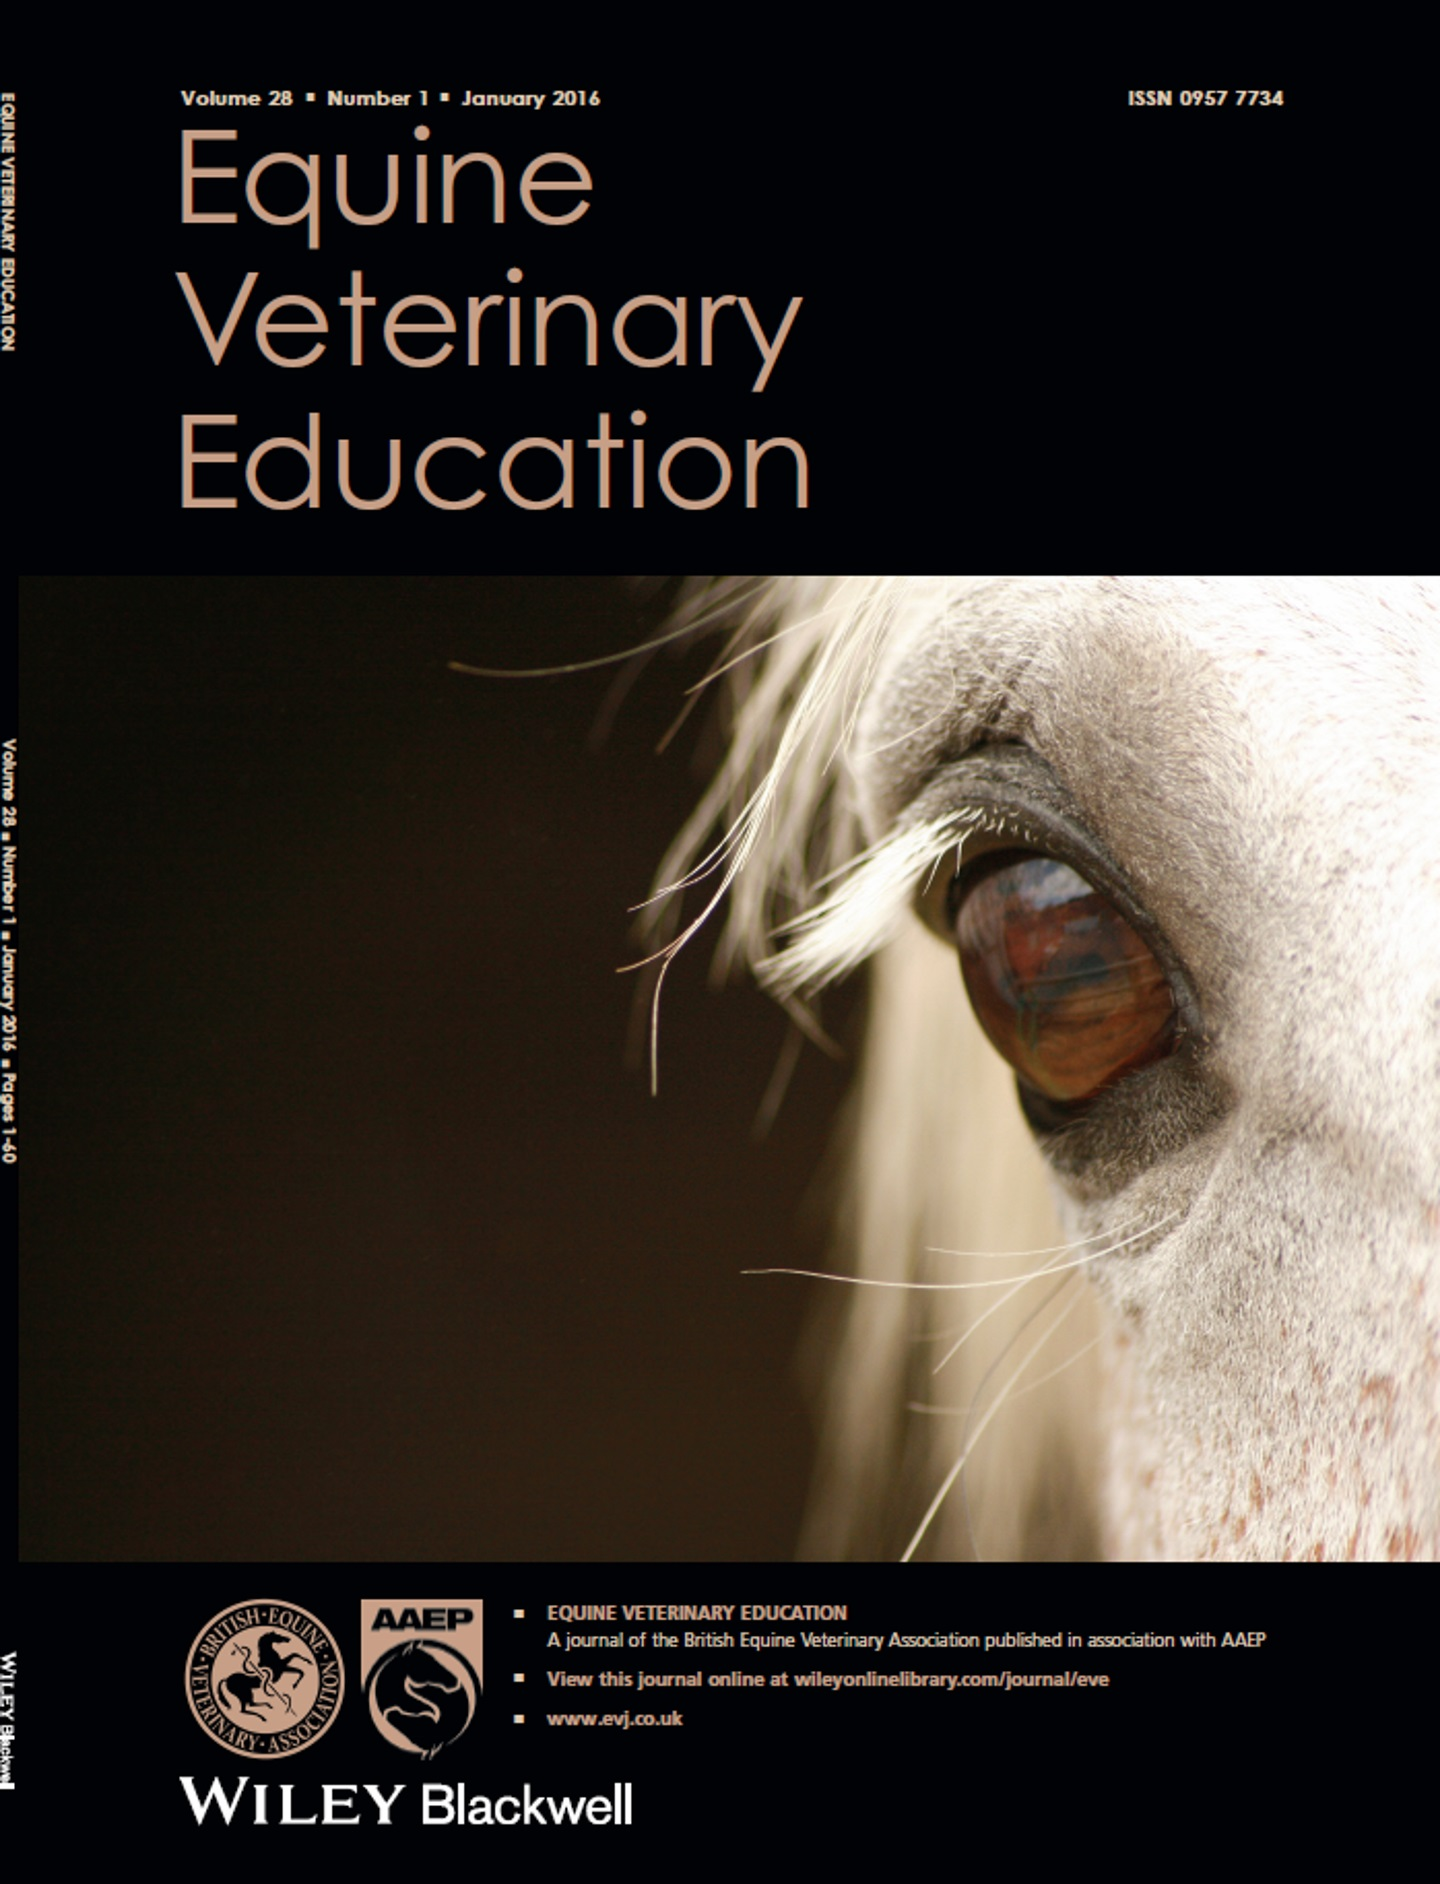 EVE Podcast, No 1, December 2015 - A review of research into second intention equine wound healing using manuka honey (A Bischofberger) & Quantitative assessment of gait parameters in horses (T Pfau)